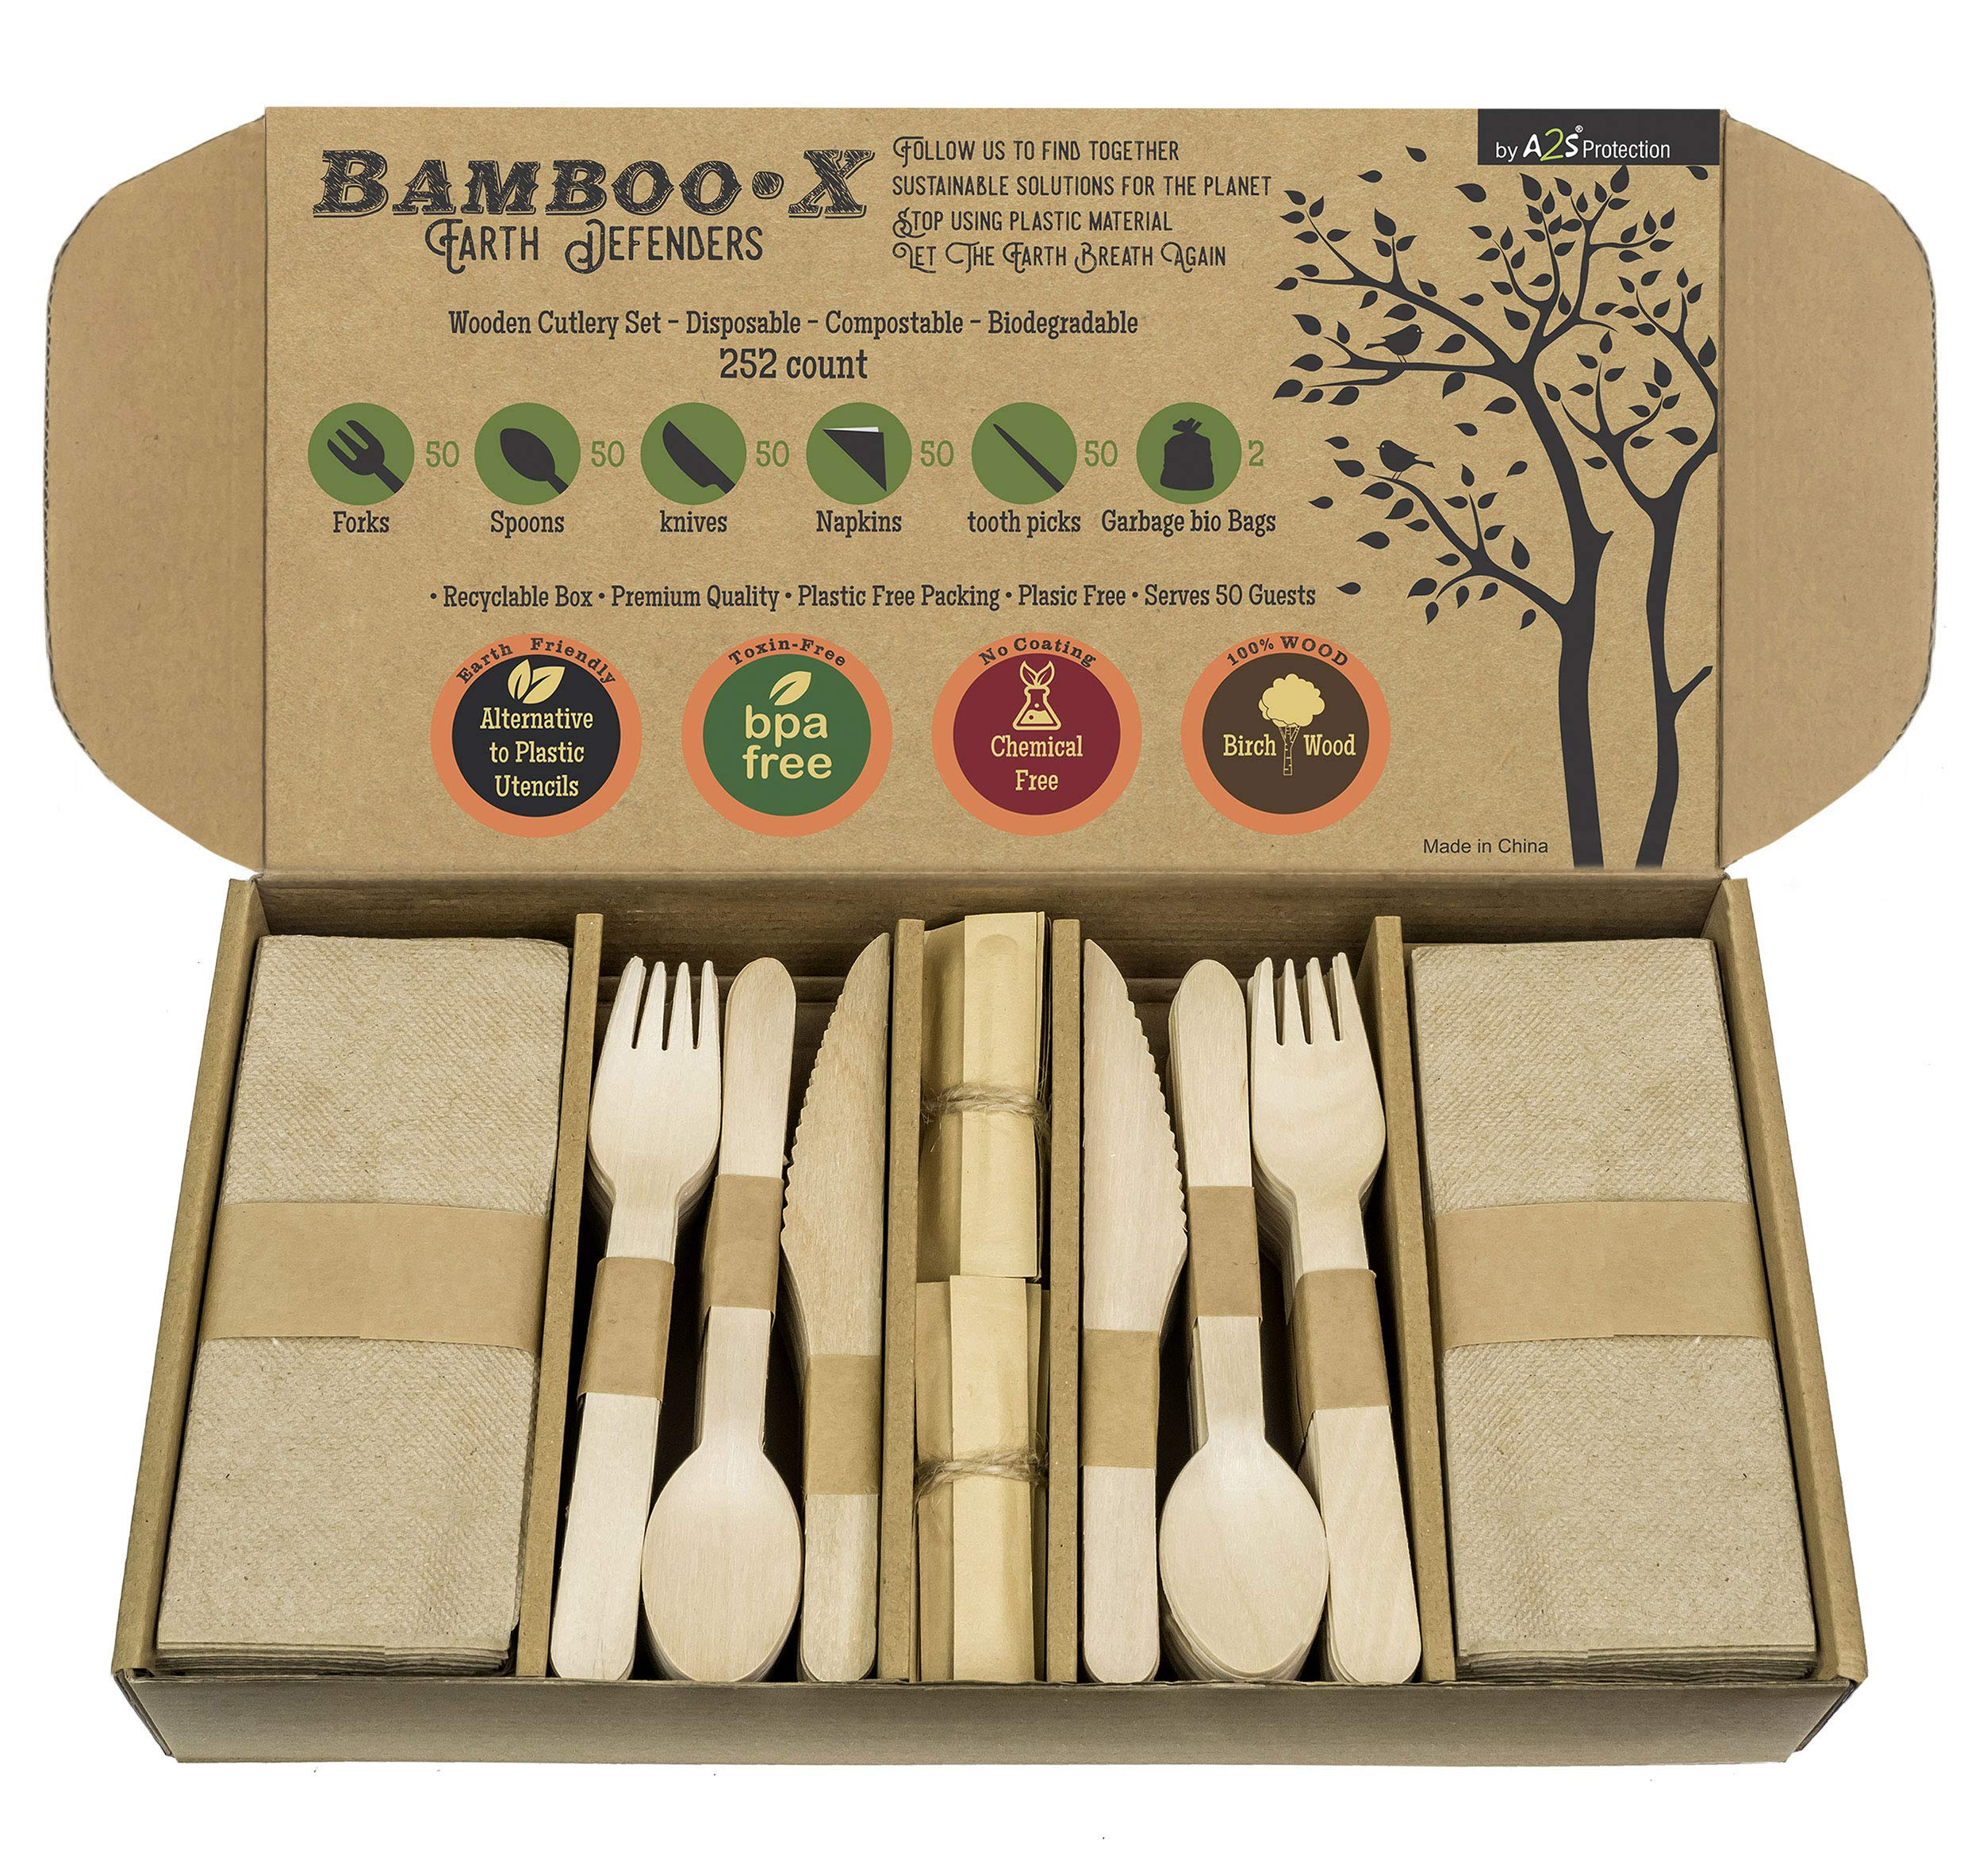 Bamboo -X Utensils Disposable Wooden Cutlery Set 252 Count: 50 Forks 50 Spoons 50 Knives 50 Compostable Brown Napkins 50 Bamboo Toothpicks 2 Biodegradable Trash Bags - Eco Friendly Utensils Set